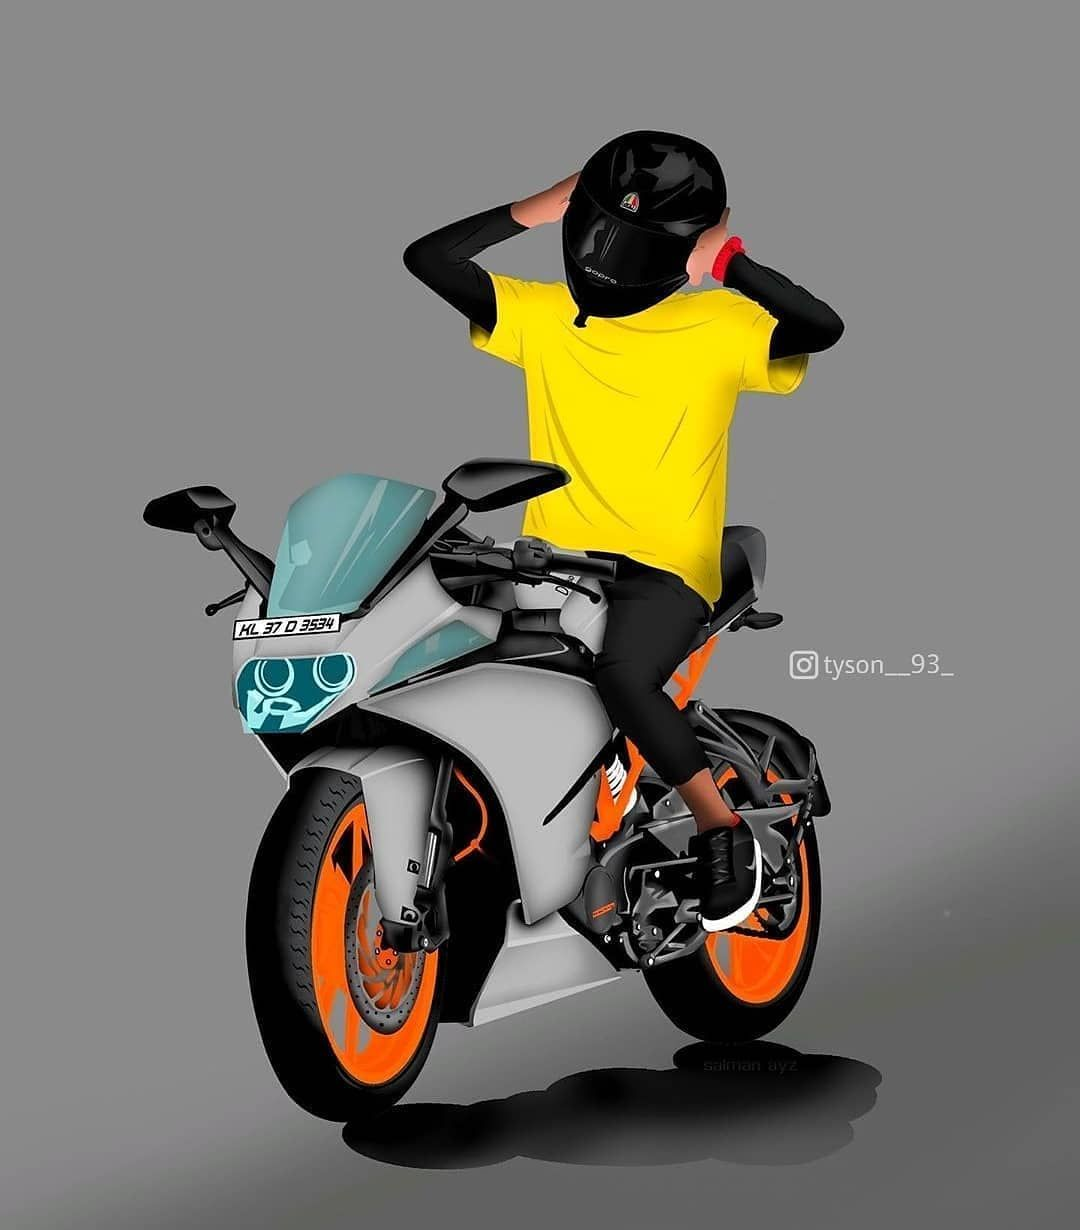 12 7k Likes 26 Comments Ktm Ready To Race India Ktmindia Official On Instagram Follow Us To Get Updates From Bike Drawing Motorbike Art Bike Sketch Full screen iphone wallpaper ktm rc